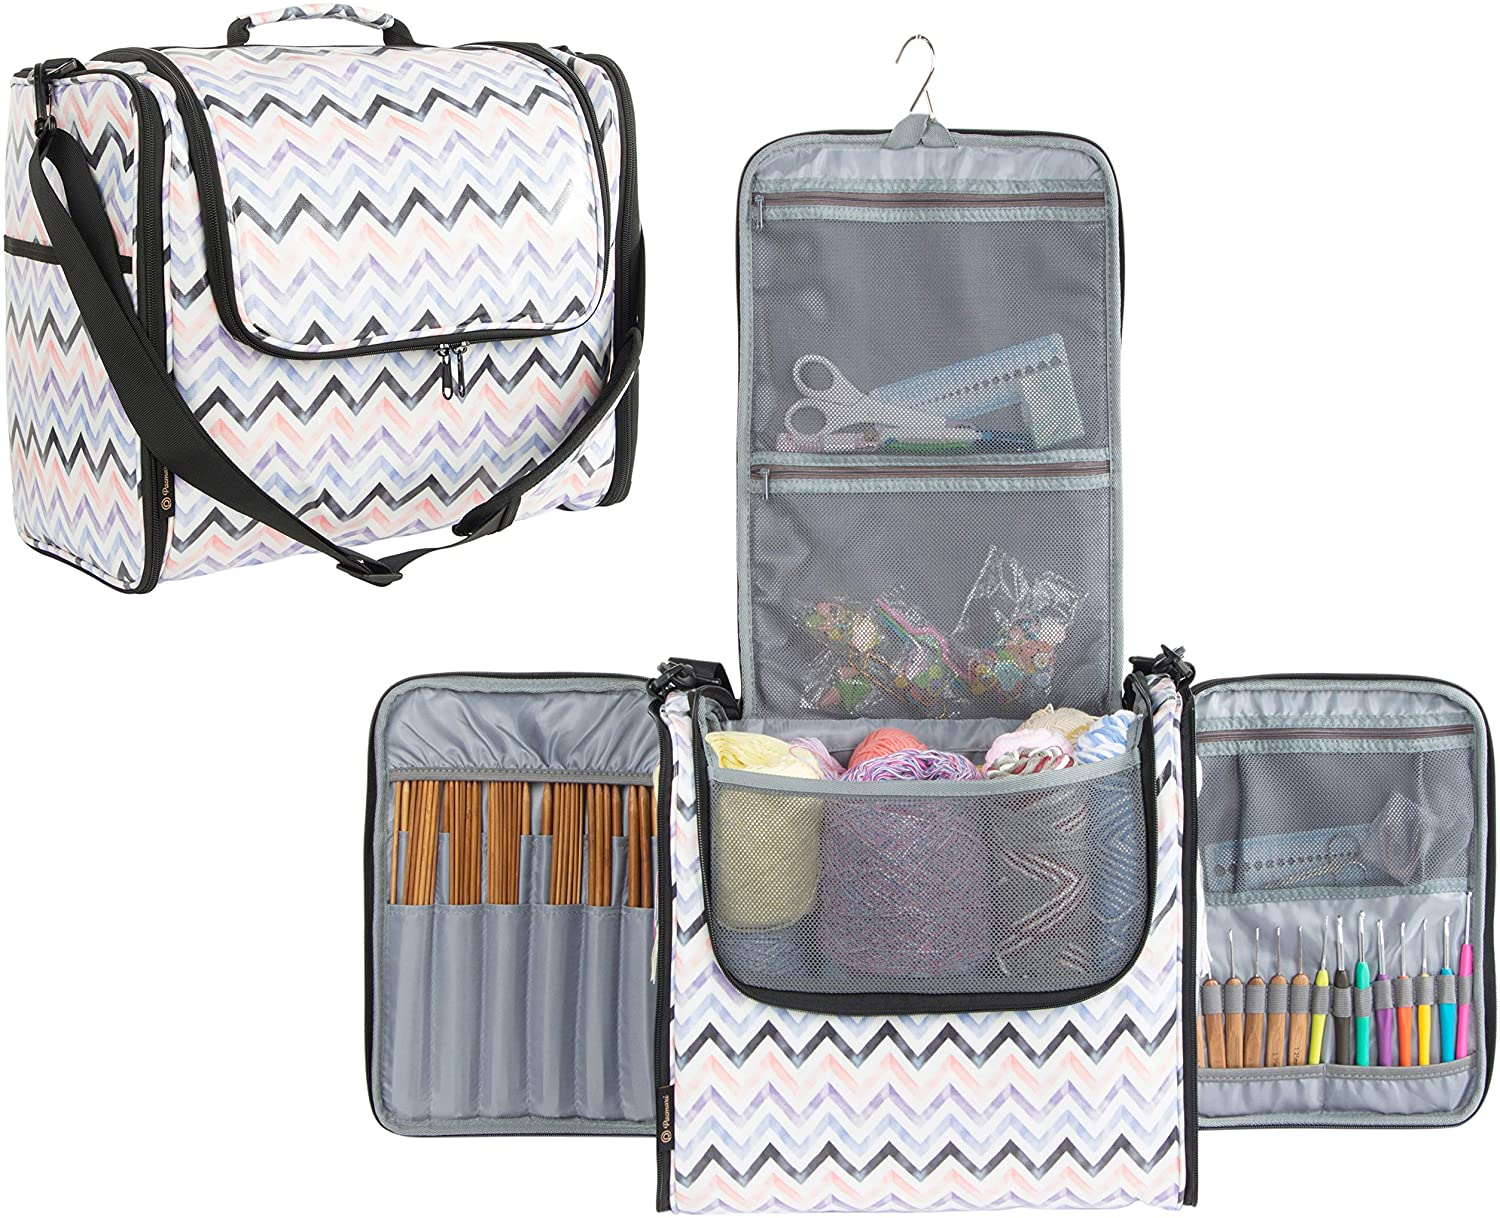 PACMAXI Yarn Storage Knitting Bag-High Capacity Portable Yarn Tote Storage Organizer with Shoulder Strap and Hook for Cotton Yarns, Crochet Hooks, Knitting Needles(Up to 10 Inch) (Chevron(Large))